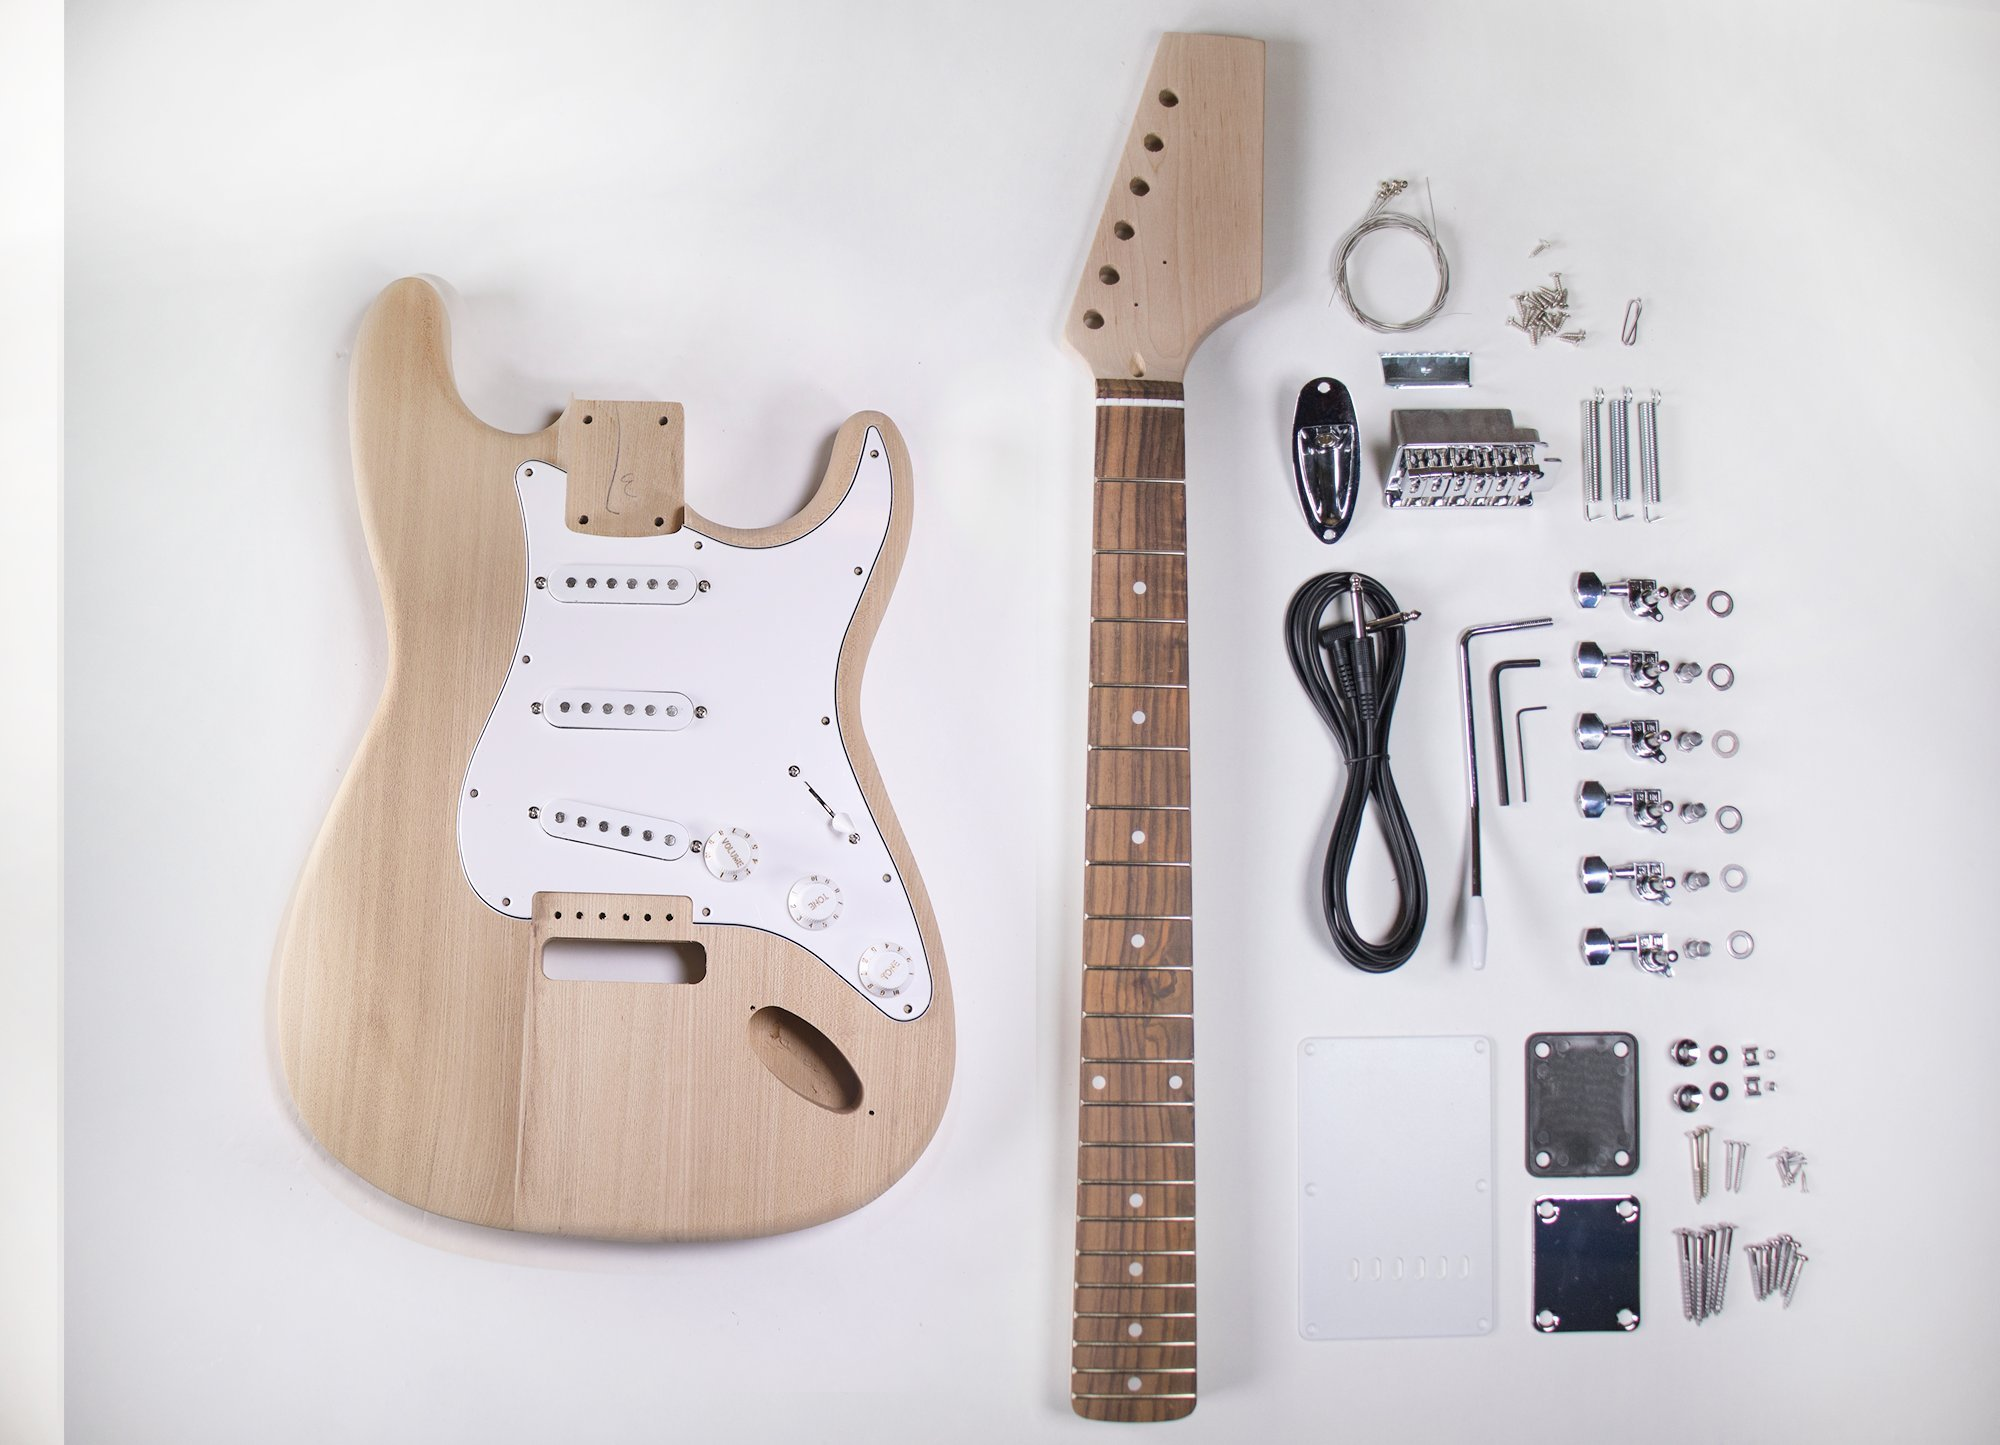 Cheap DIY Electric Guitar Kit - Ash ST Style Build Your Own Guitar Black Friday & Cyber Monday 2019